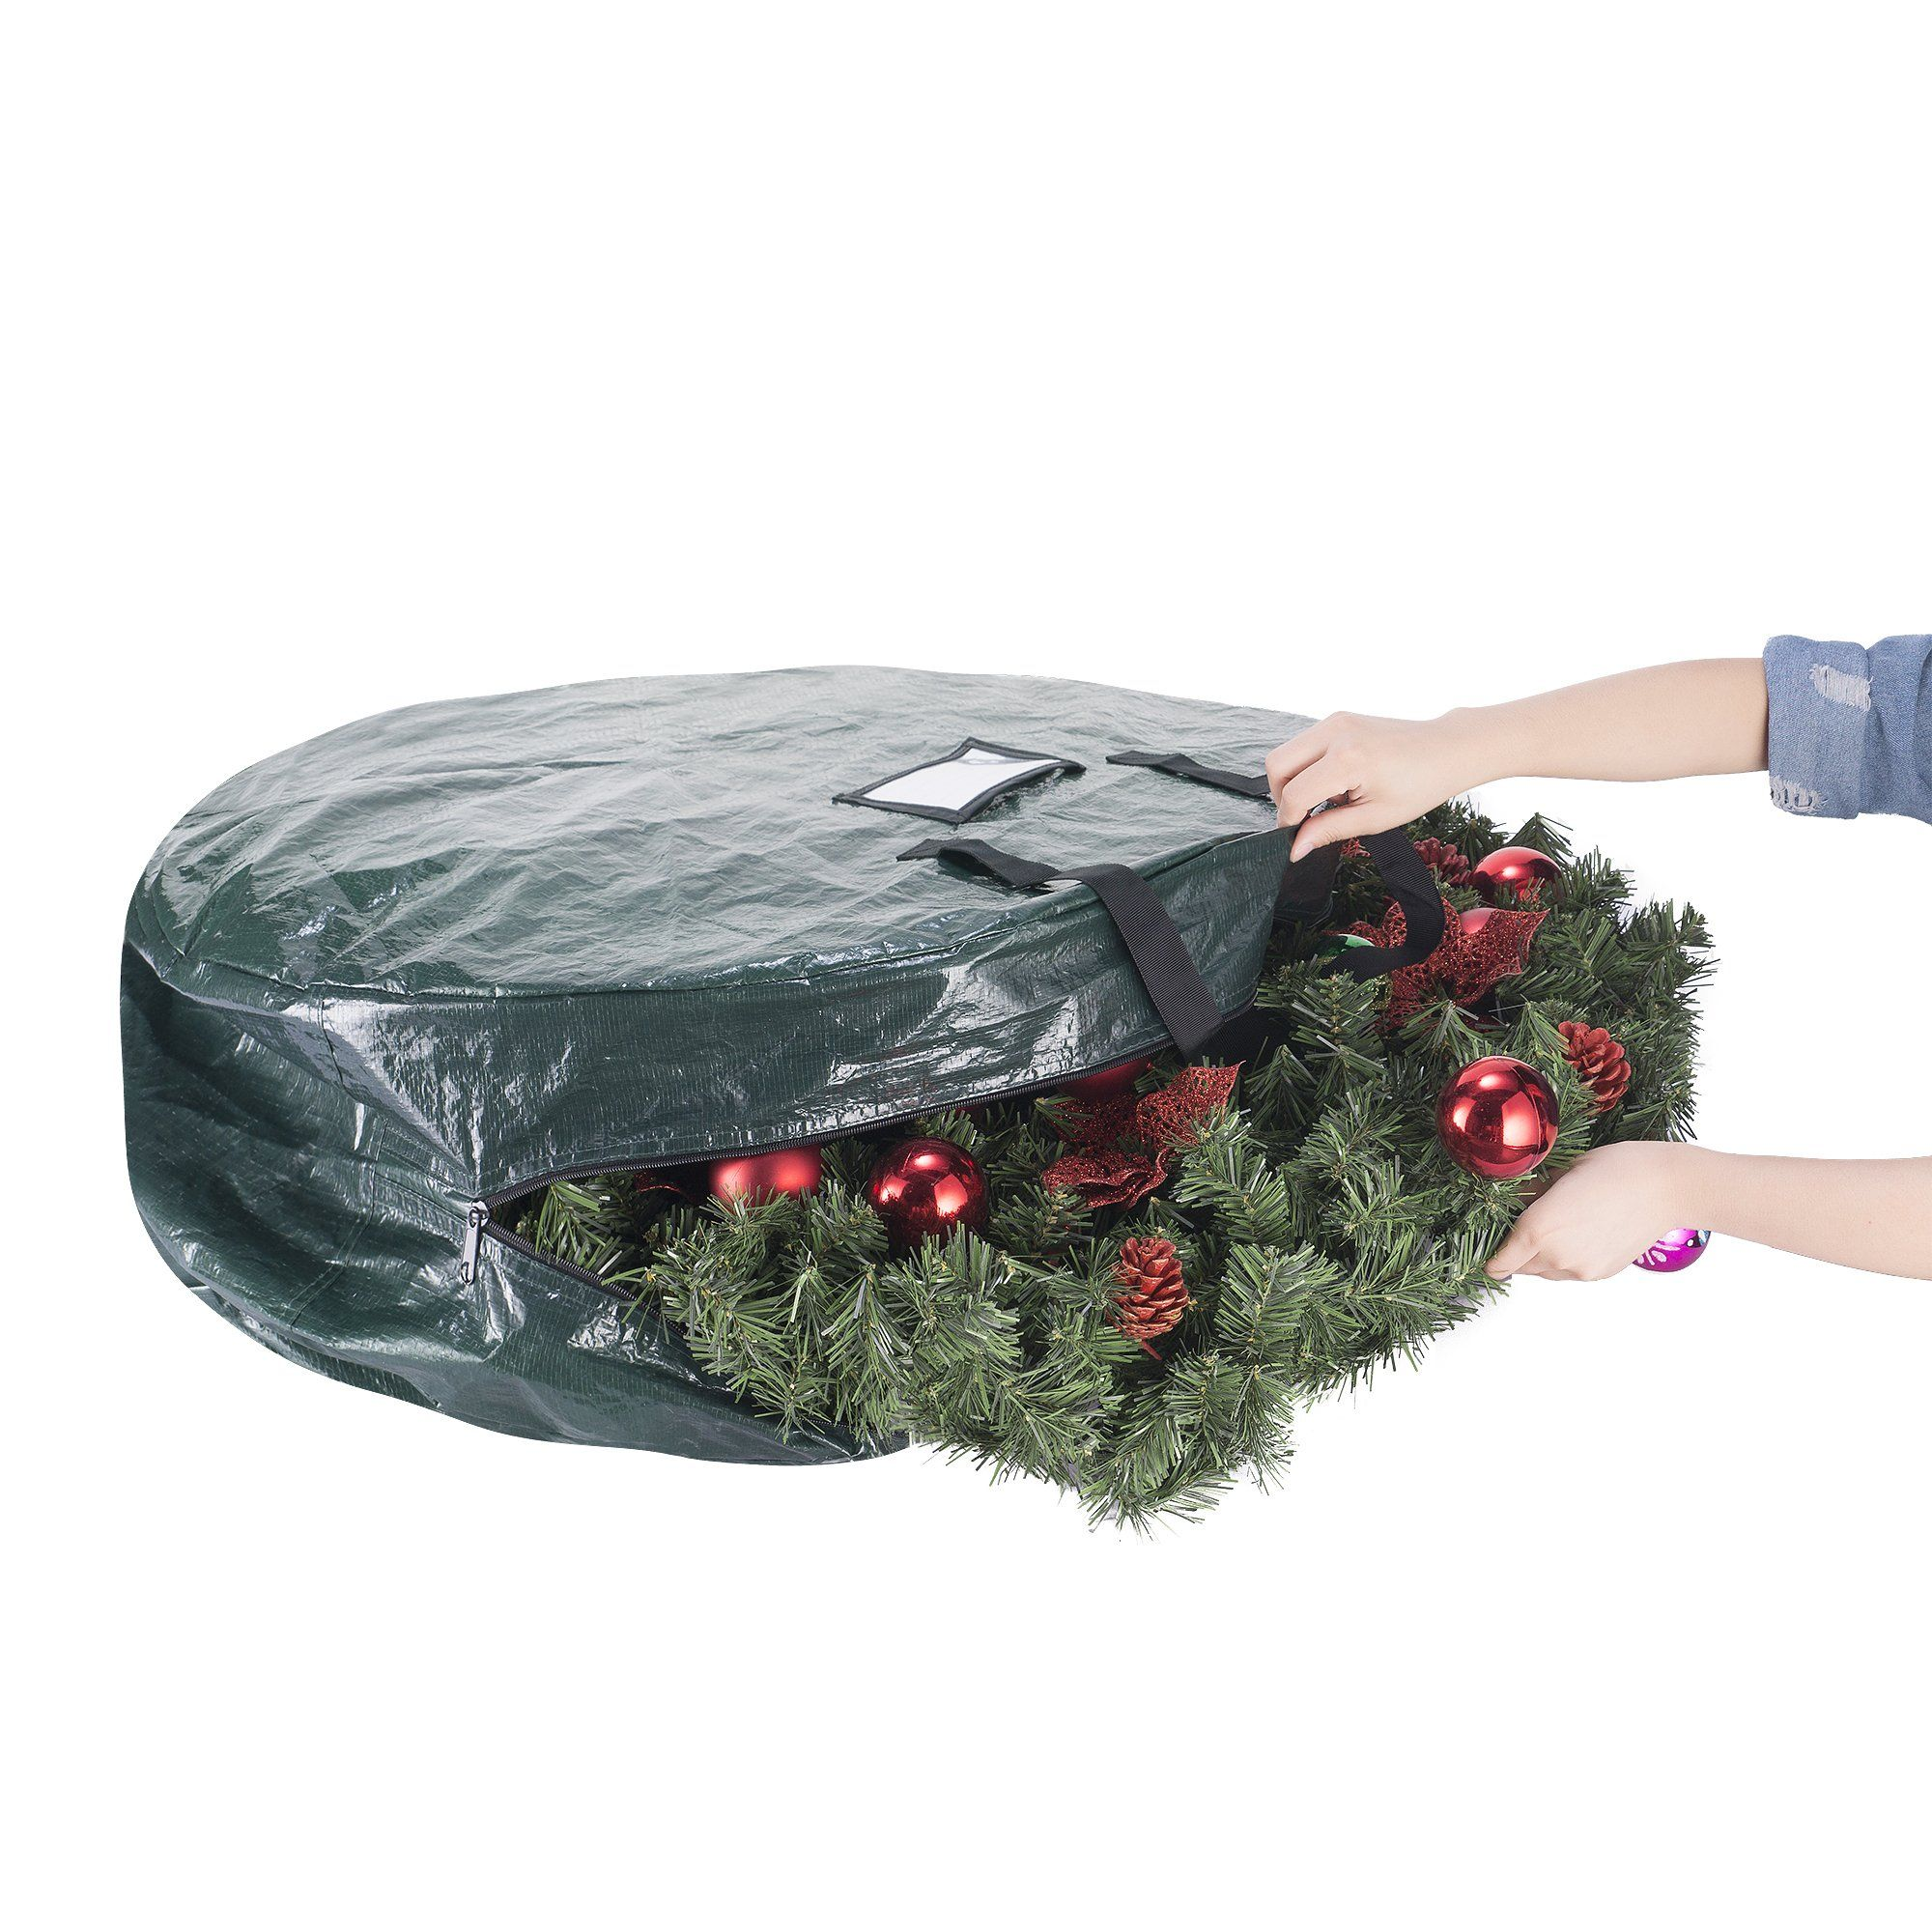 Elf Stor Deluxe Green Christmas Tree Storage Bag For 9 Foot Artificial Trees And 30 Inch Wre Christmas Tree Storage Bag Christmas Tree Storage Tree Storage Bag